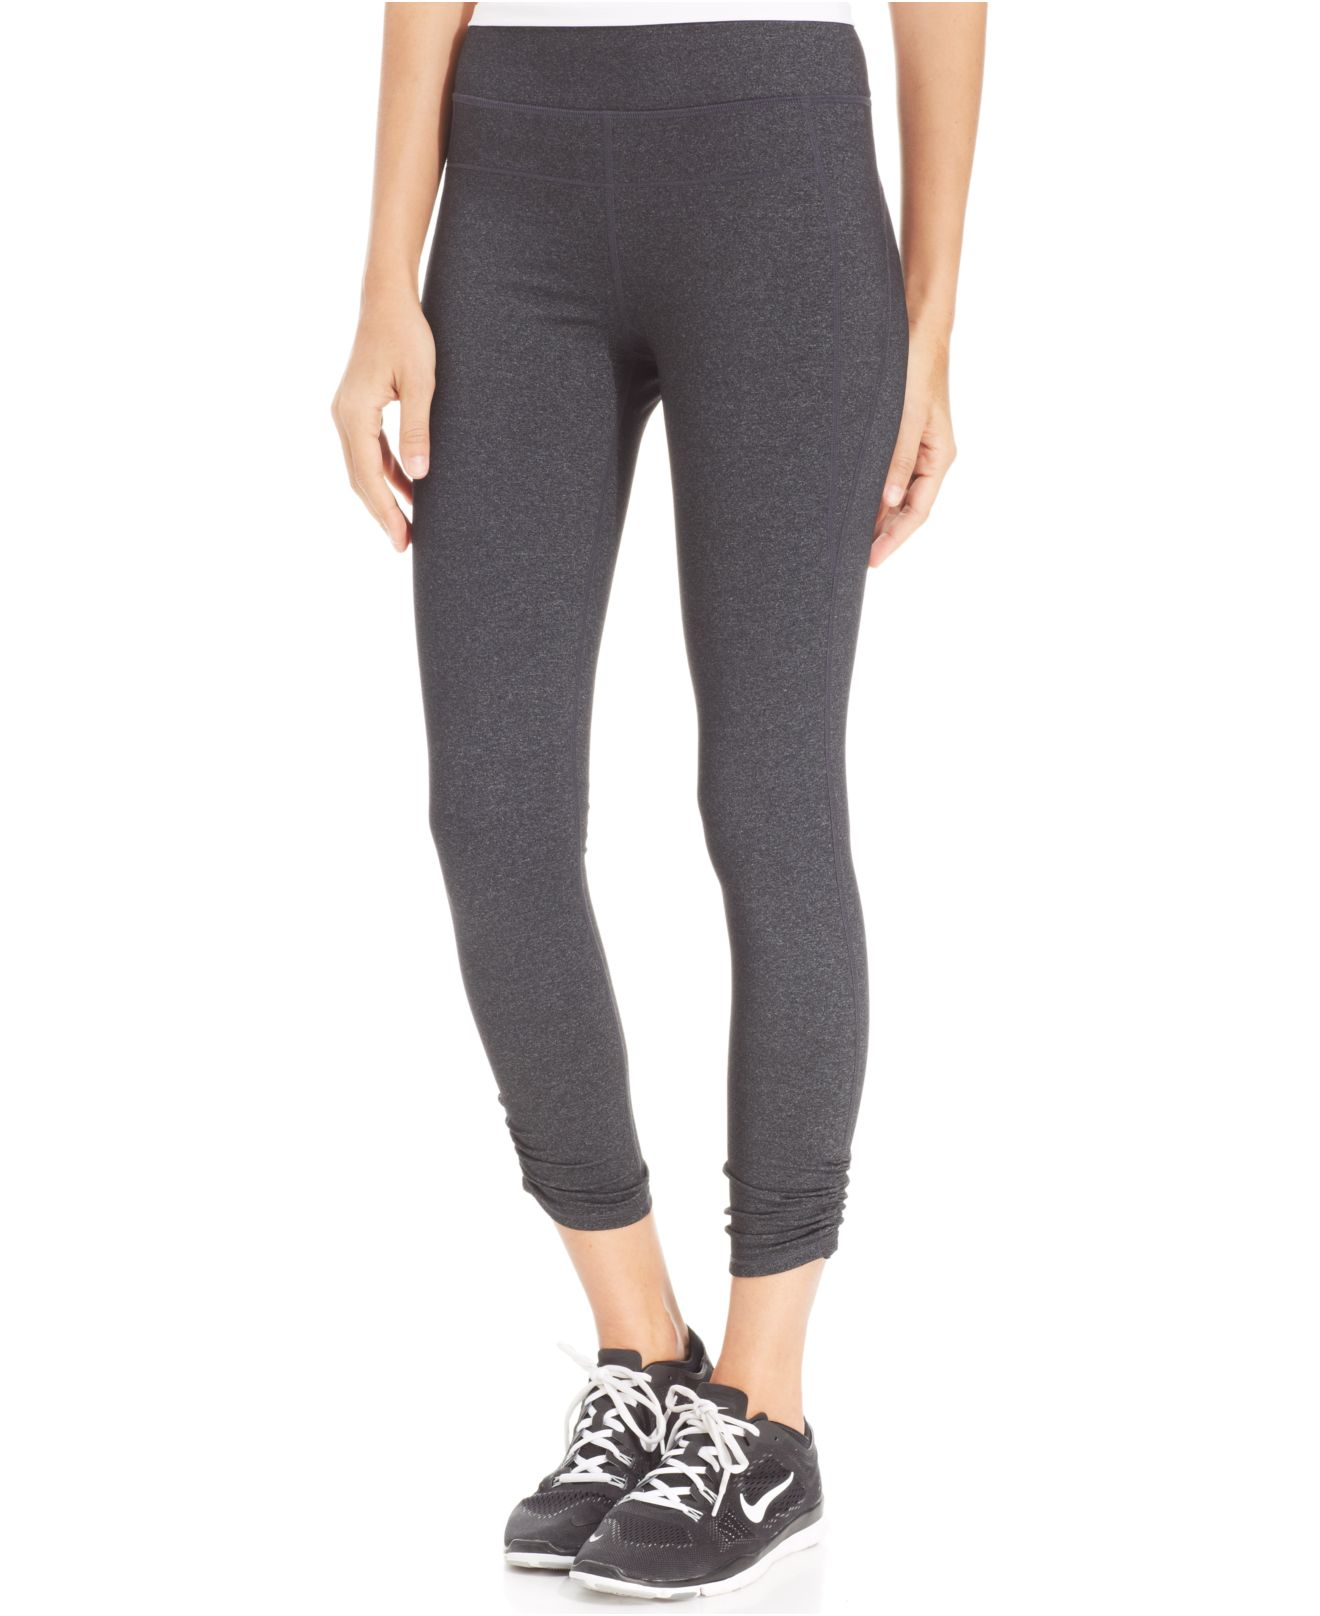 calvin klein performance ruched leggings in gray lyst. Black Bedroom Furniture Sets. Home Design Ideas